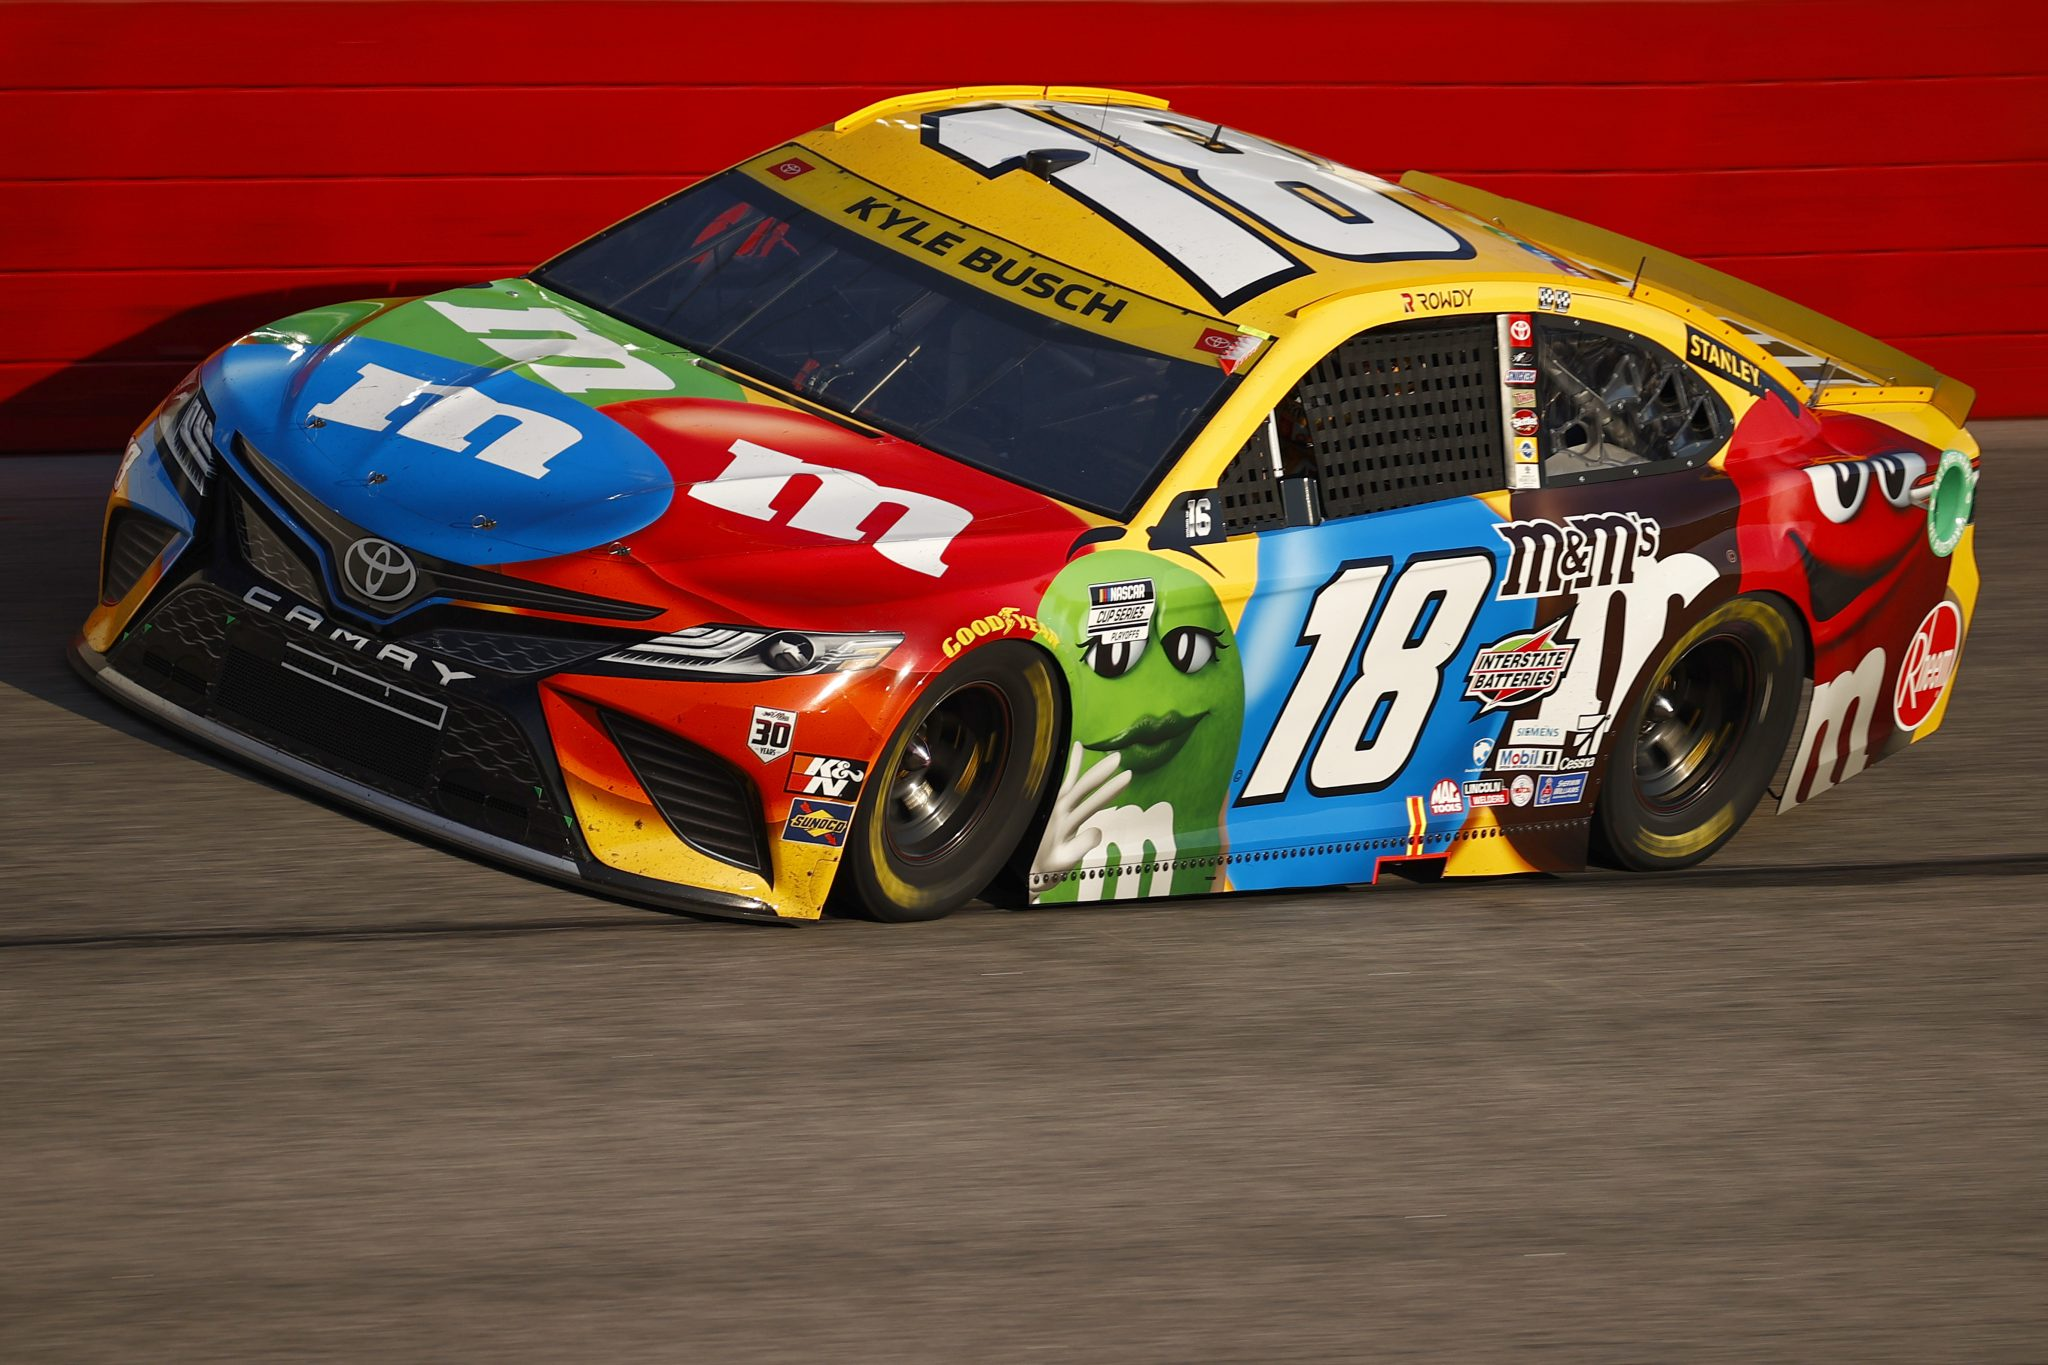 DARLINGTON, SOUTH CAROLINA - SEPTEMBER 05: Kyle Busch, driver of the #18 M&M's Toyota, drives during the NASCAR Cup Series Cook Out Southern 500 at Darlington Raceway on September 05, 2021 in Darlington, South Carolina. (Photo by Jared C. Tilton/Getty Images) | Getty Images